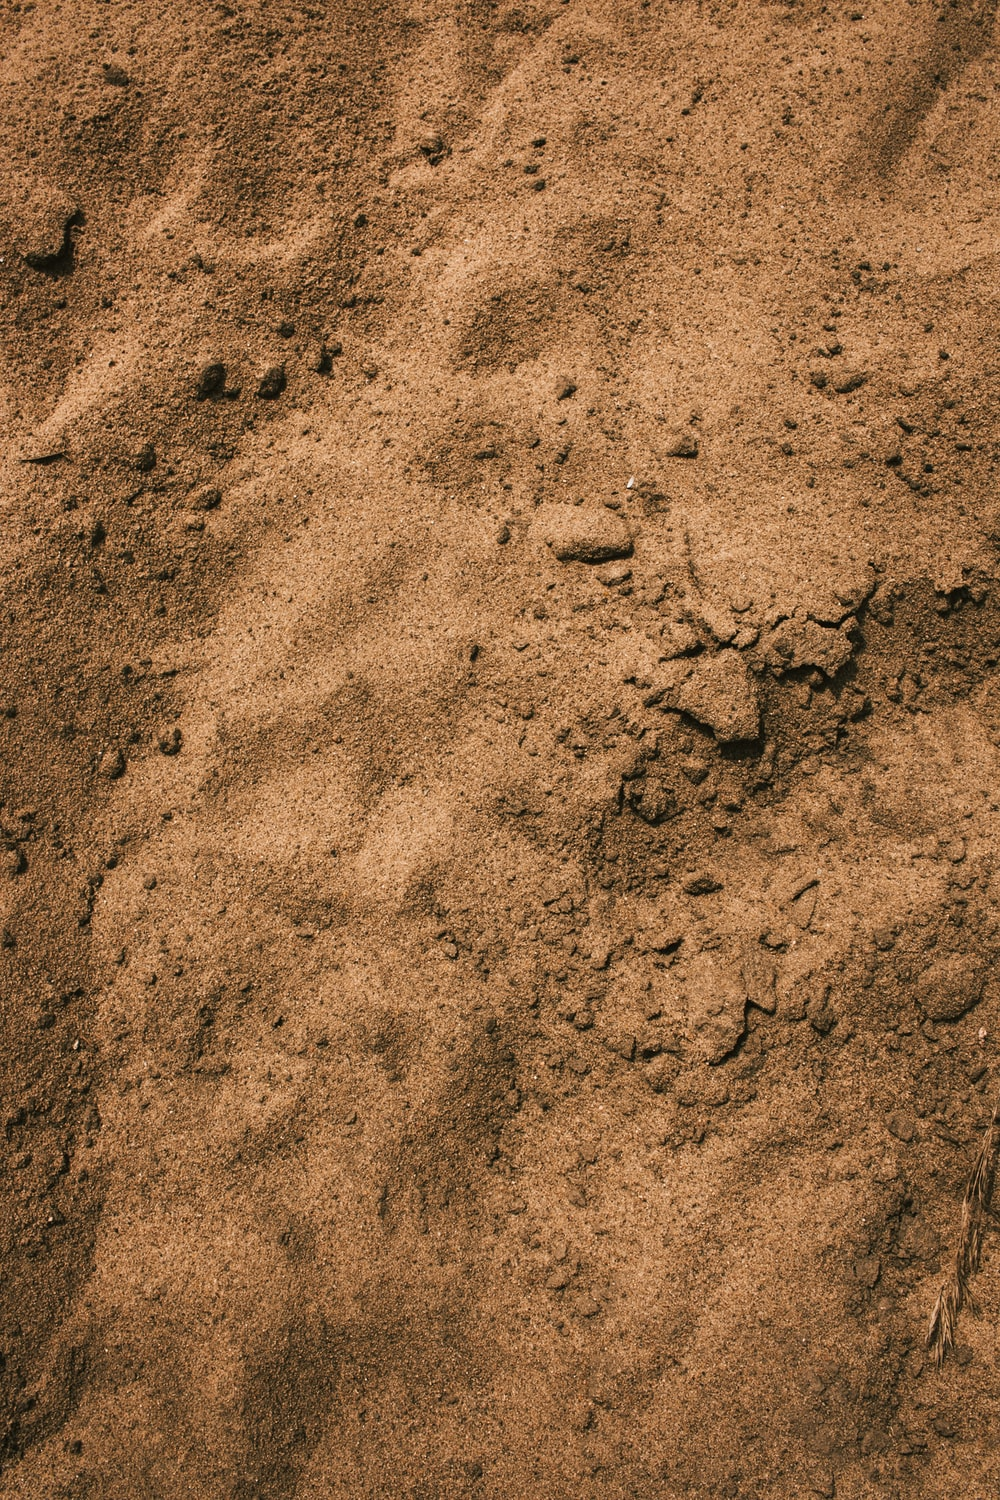 brown sand close-up photography